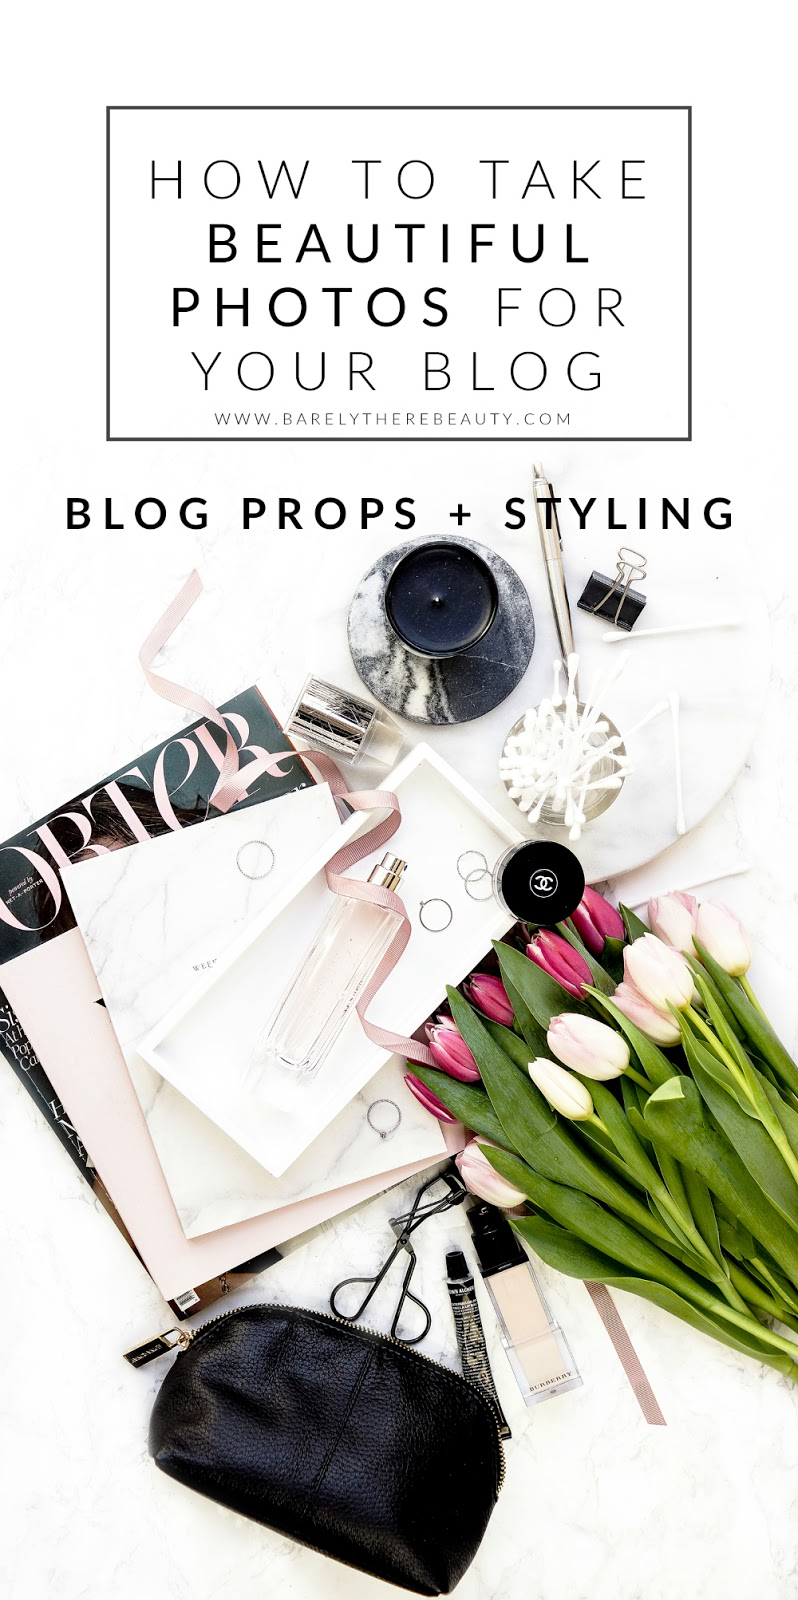 blog props & photography styling tips